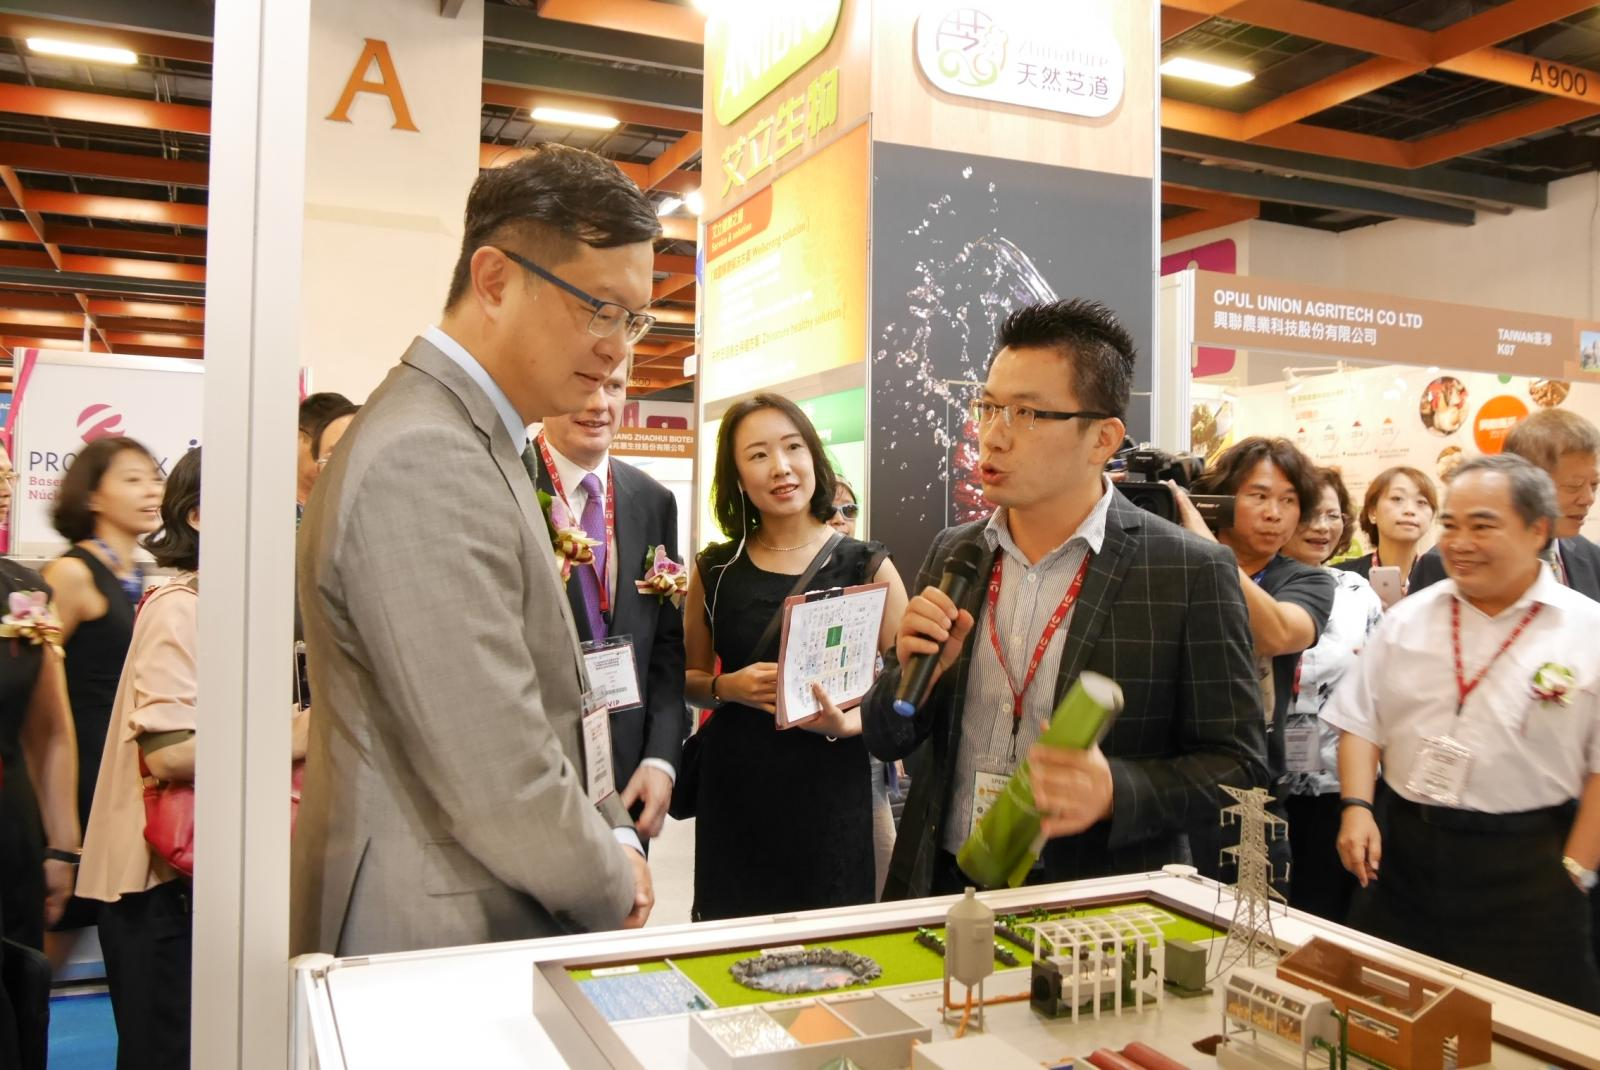 COA Deputy Minister Mr. Lee Tui-chih visits the show.